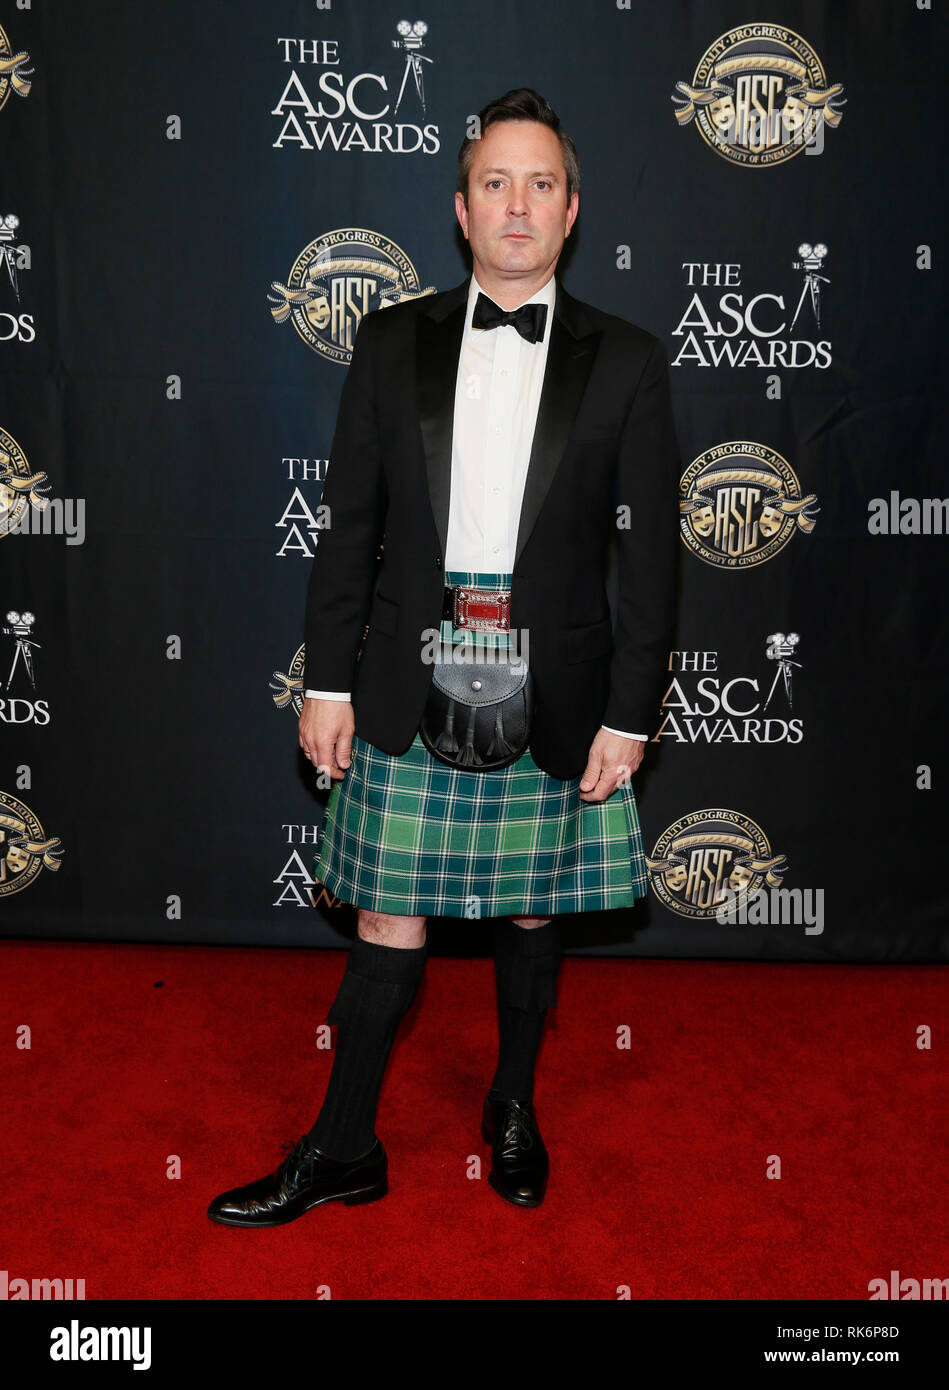 California, USA. 9th Feb 2019. Actor Thomas Lennon poses at the 33rd annual ASC Awards and The American Society of Cinematographers 100th Anniversary Celebration at the Ray Dolby Ballroom at Hollywood & Highland, Saturday, February 9, 2019 in Hollywood, California. Photo by Danny Moloshok/Moloshok Photography, Inc./imageSPACE Credit: Imagespace/Alamy Live News Stock Photo